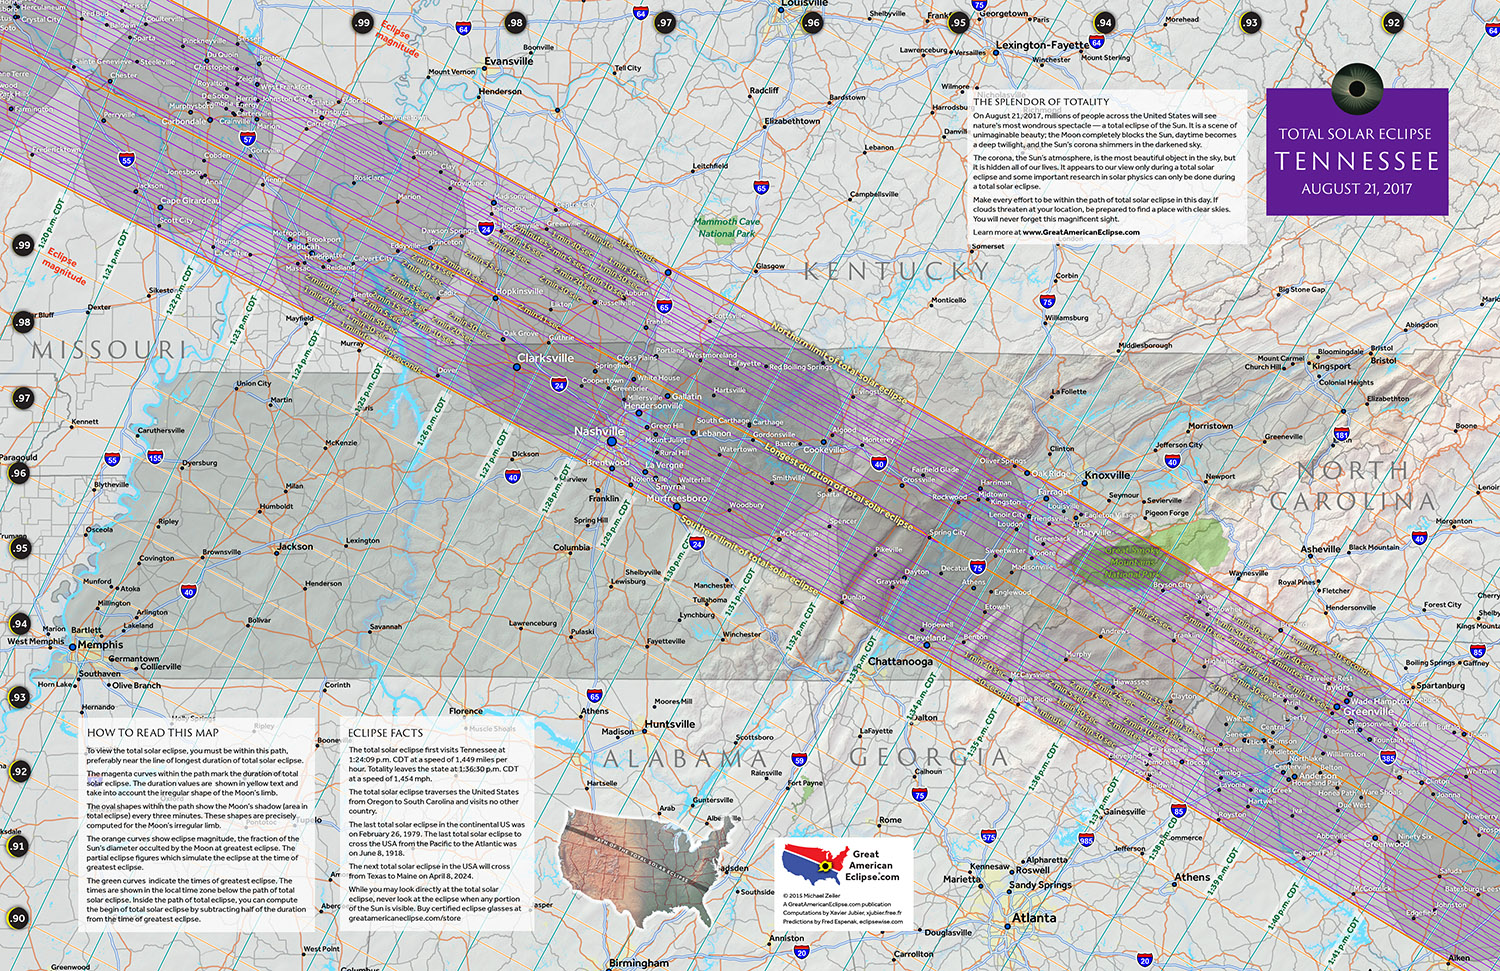 Tennessee 2017 State Map — Total solar eclipse of April 8, 2024